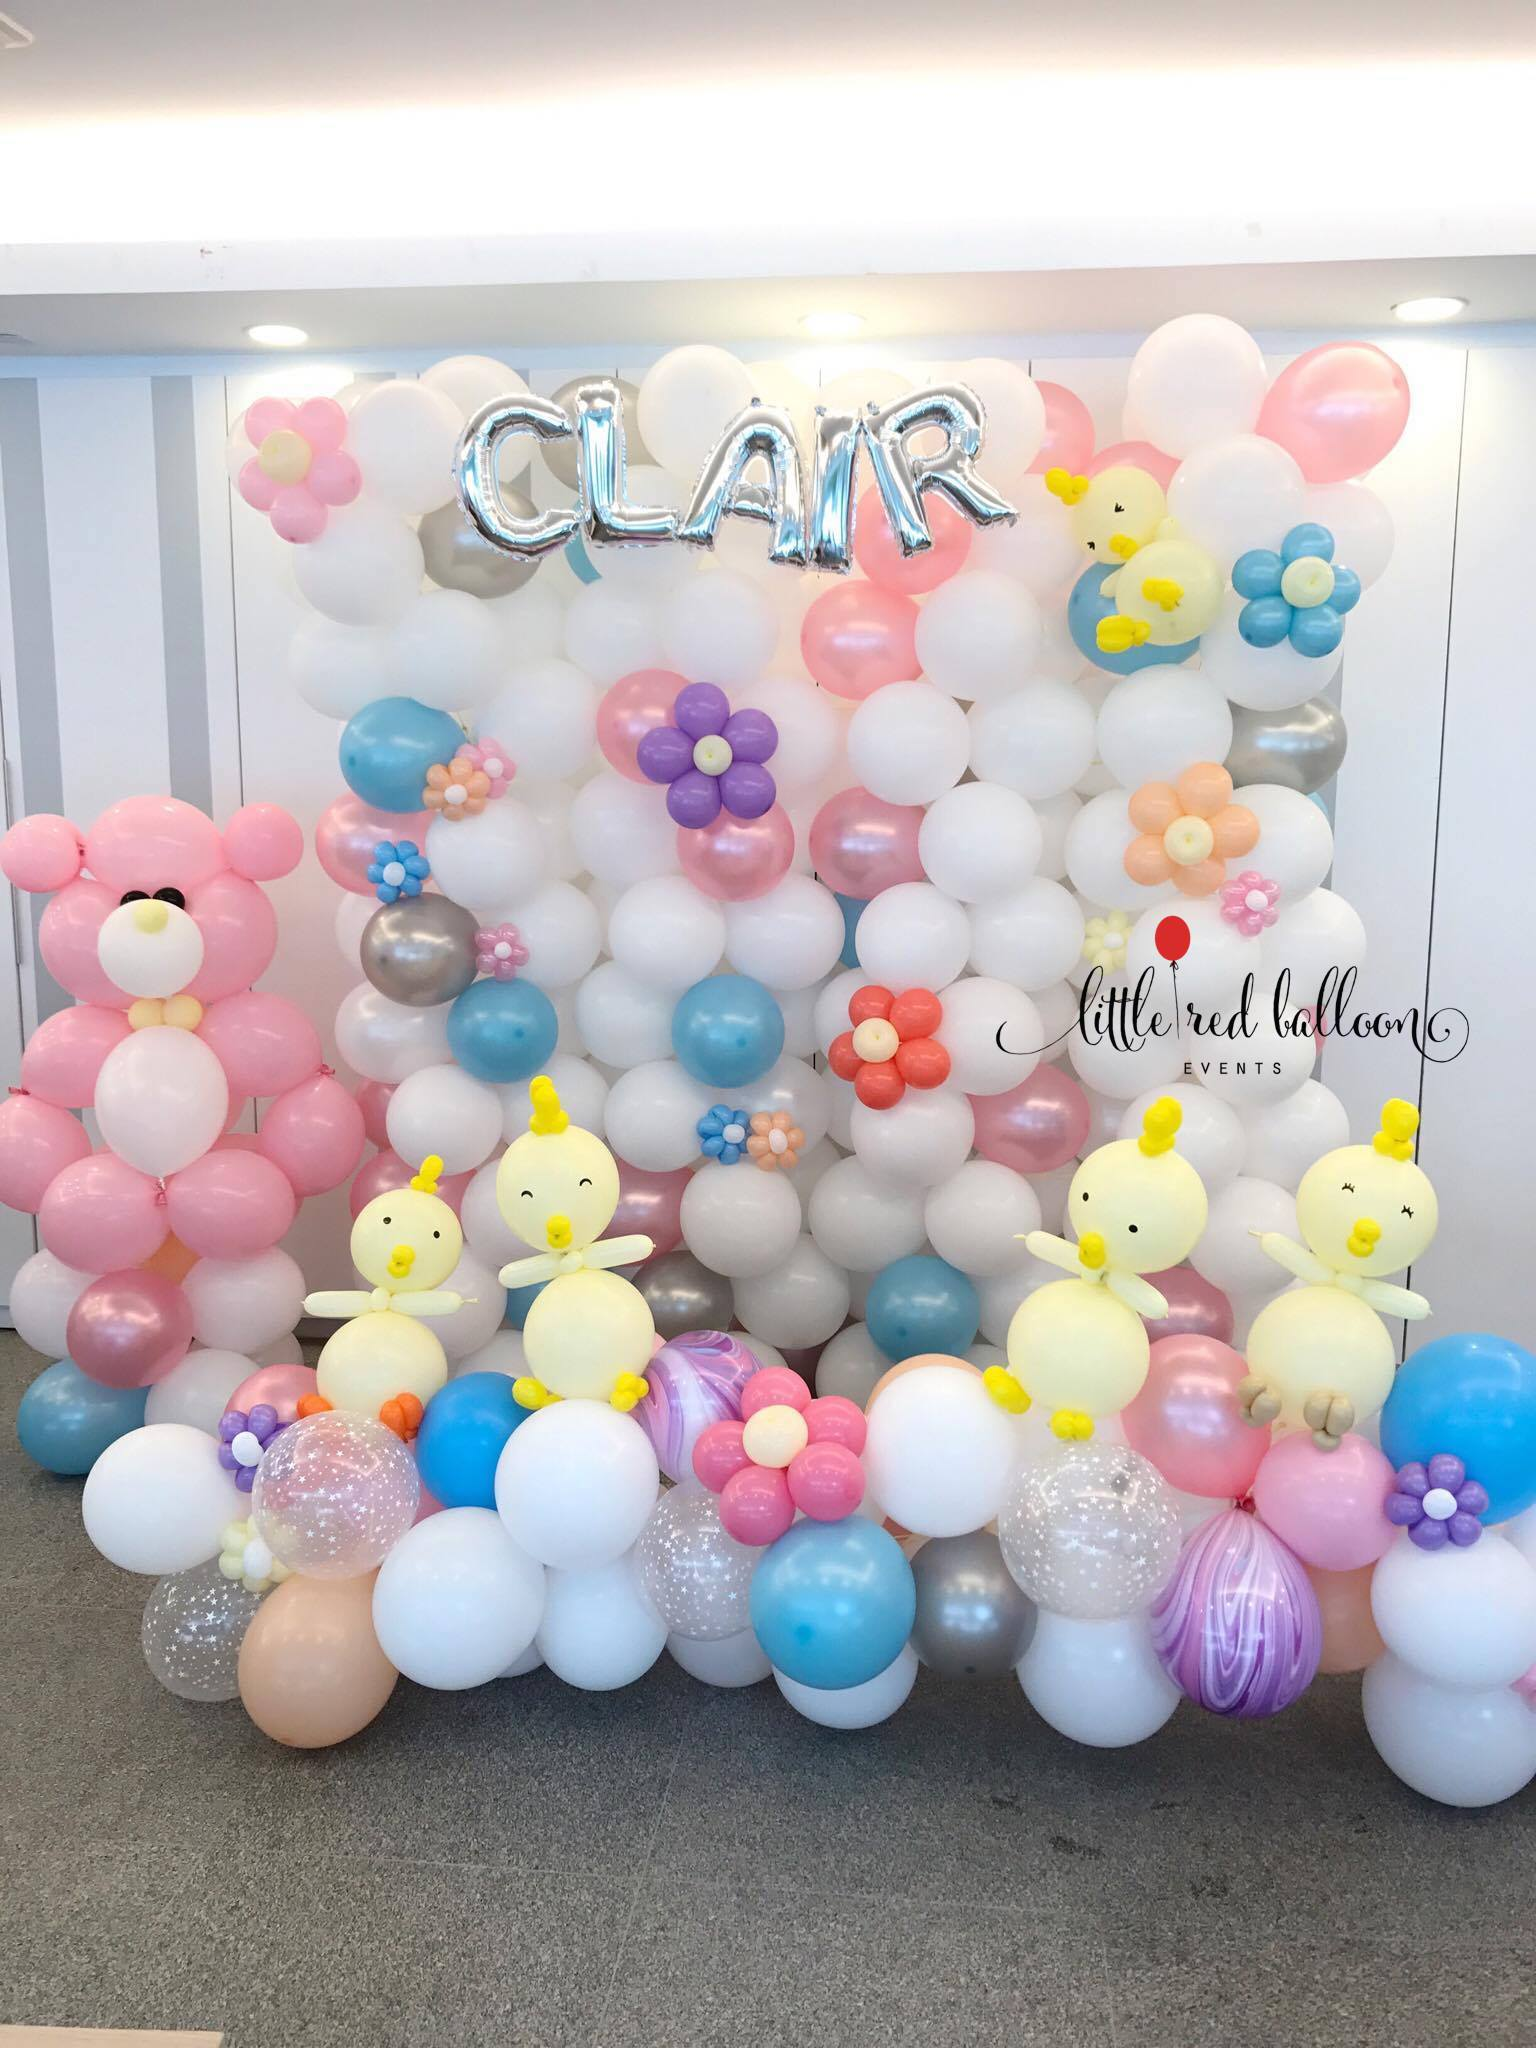 Birthday Balloons Singapore Balloon Backdrops | Little Red Balloon Singapore